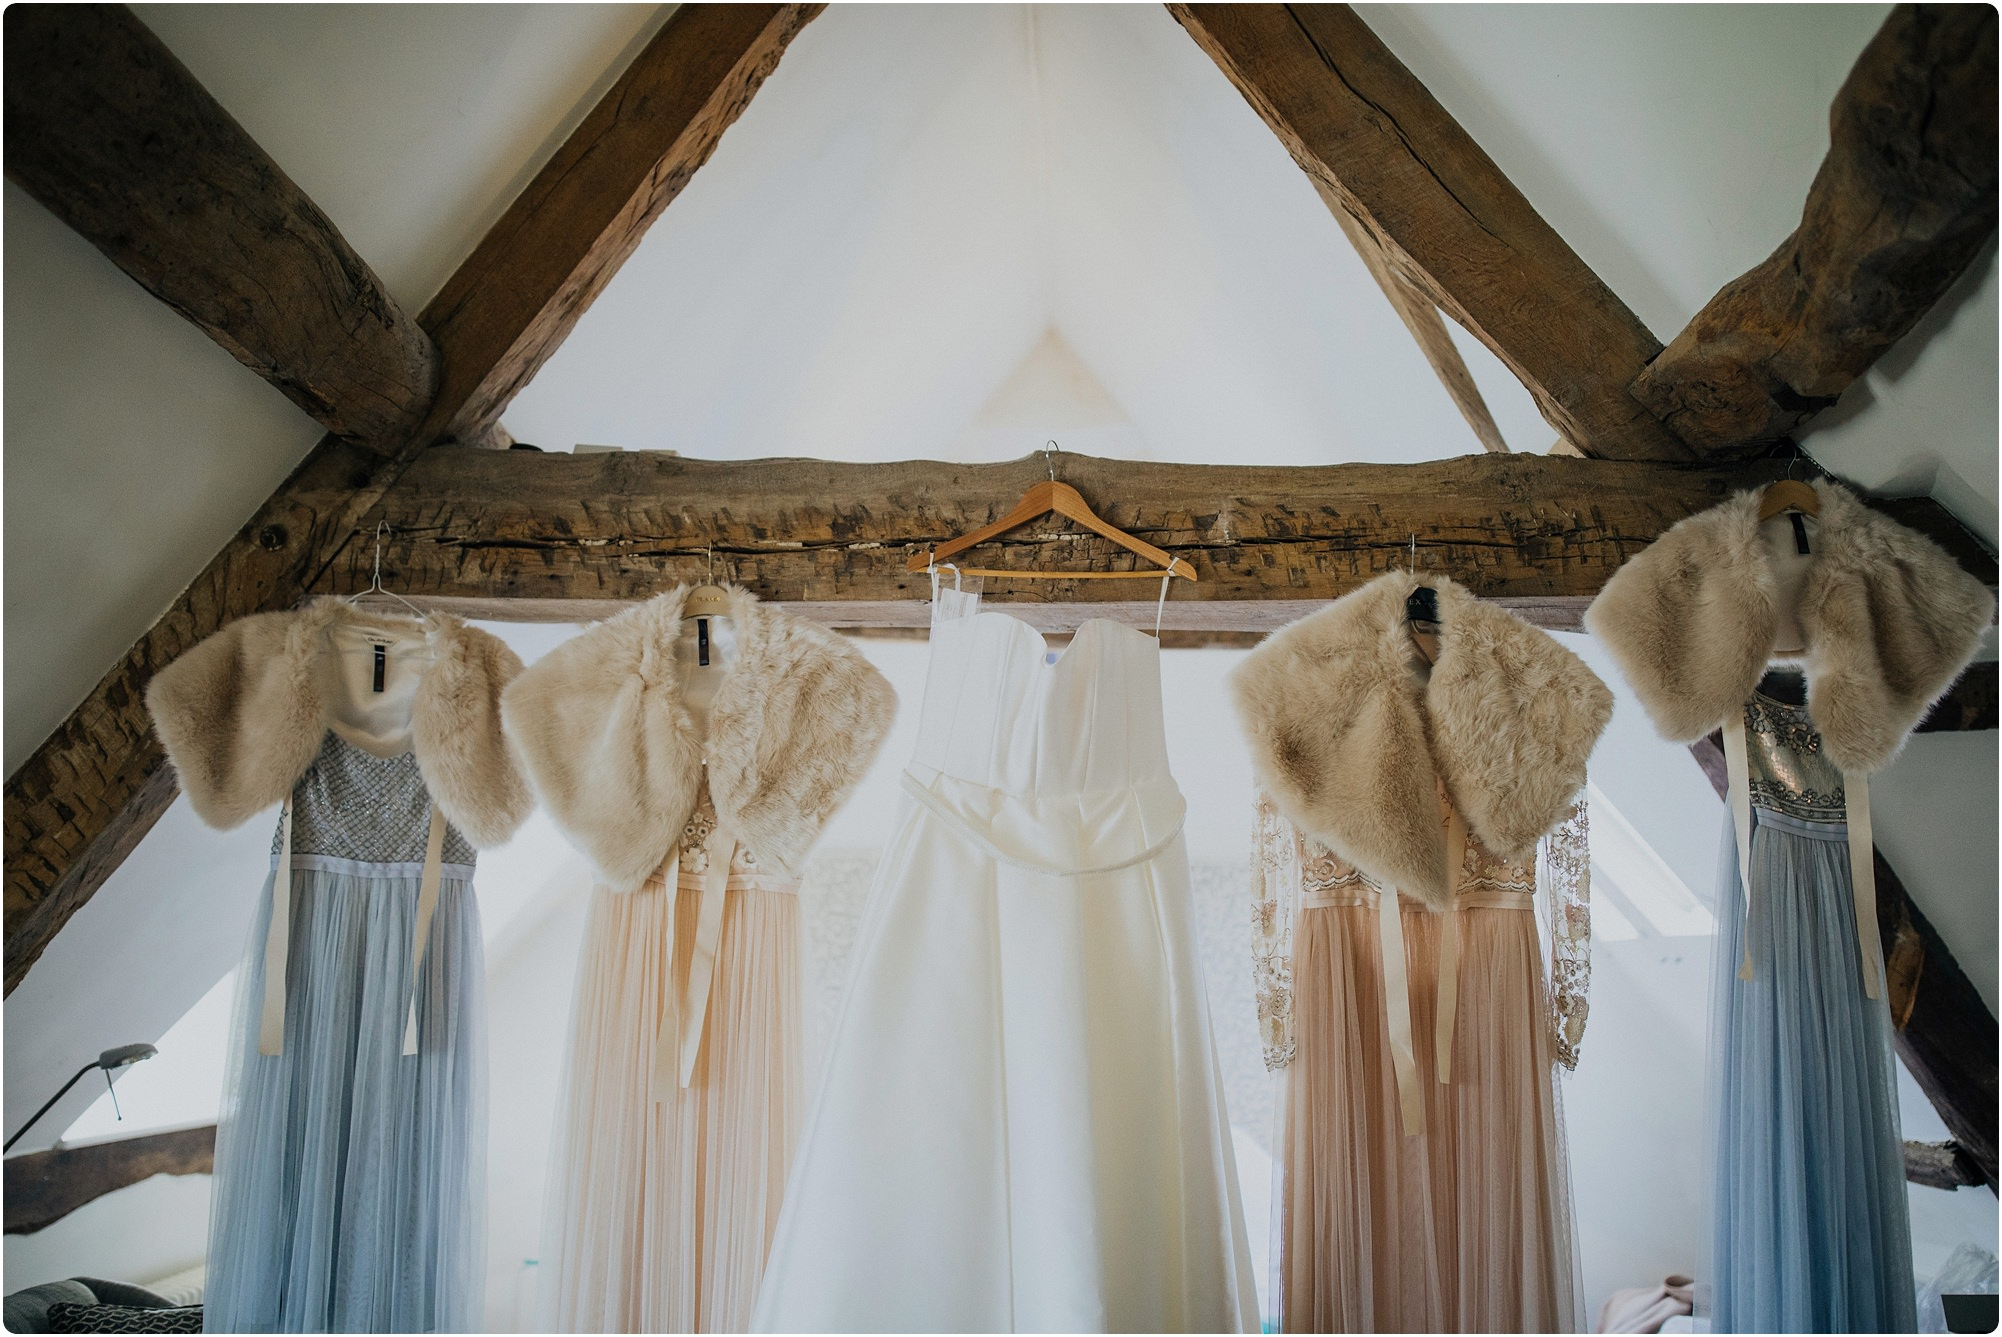 needle and thread bridesmaid dresses hanging up at Barnsley House Wedding